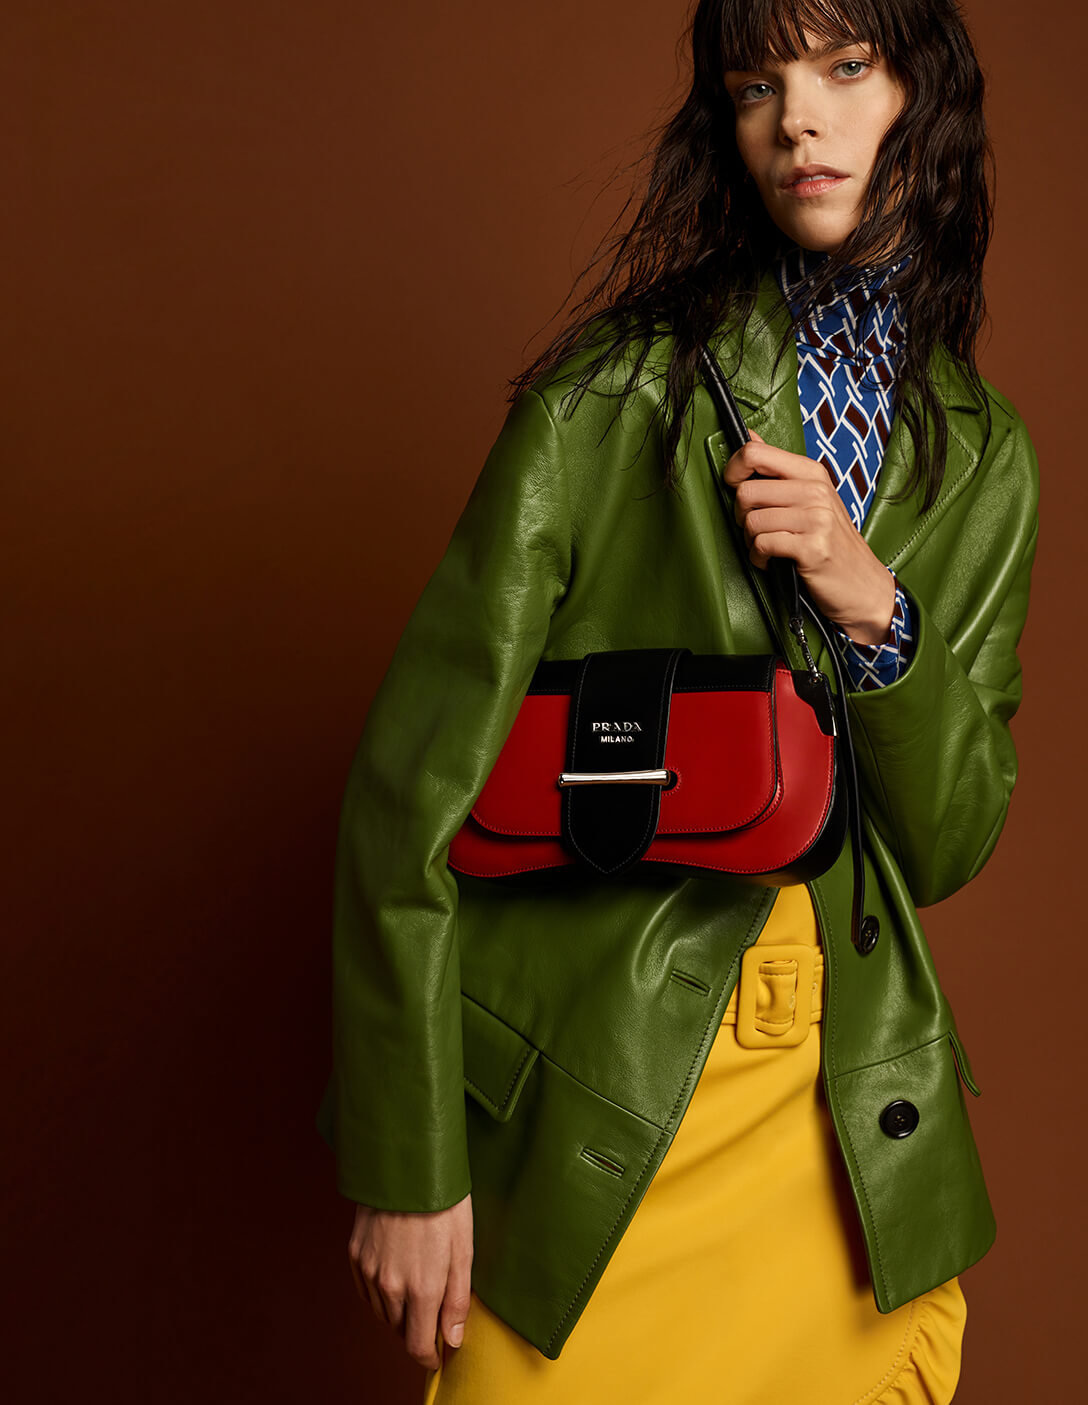 Prada model with red bag and green coat